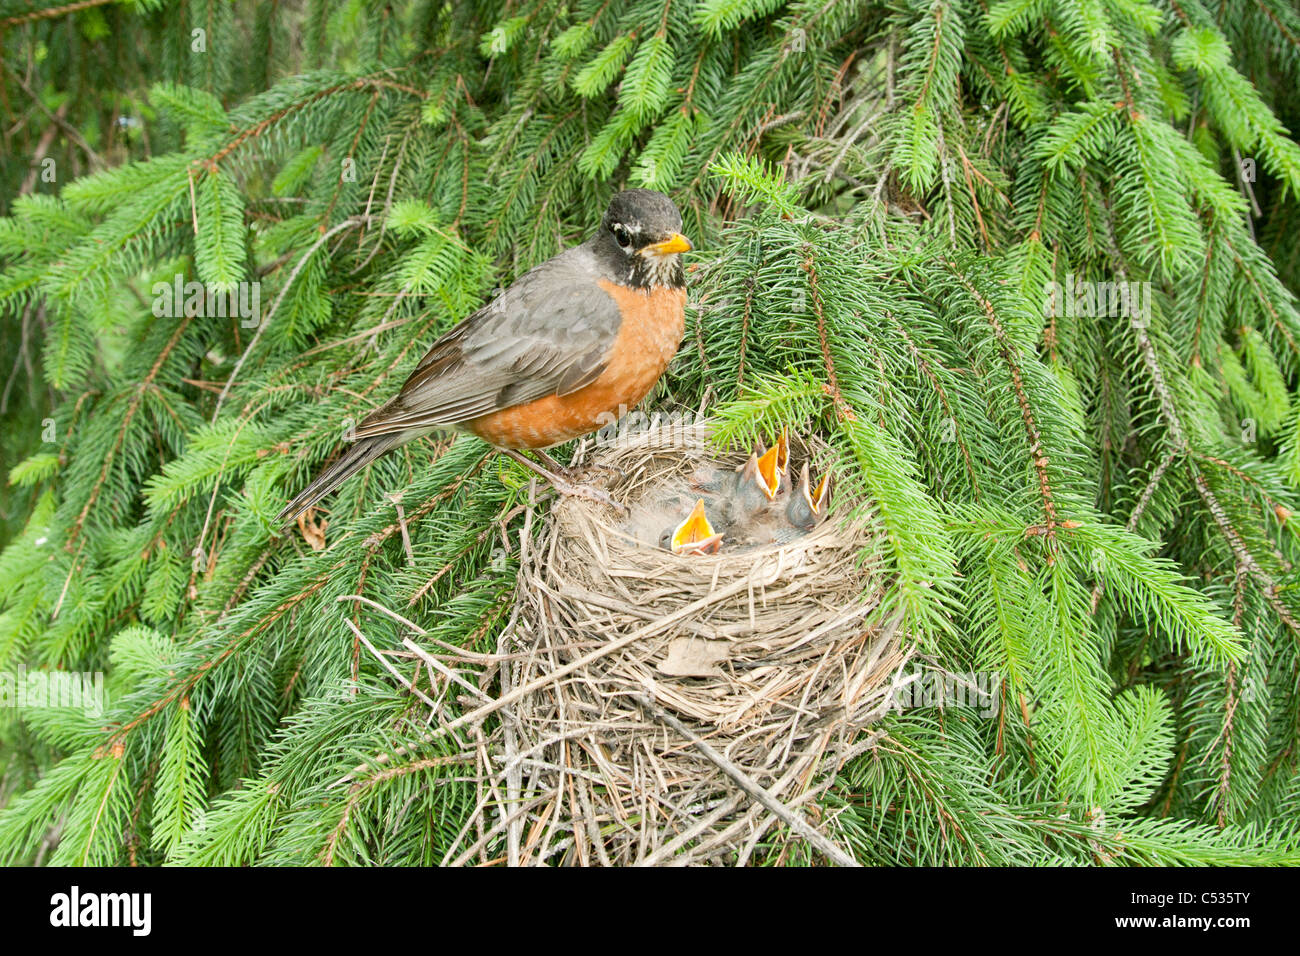 American Robin at Nest - Stock Image